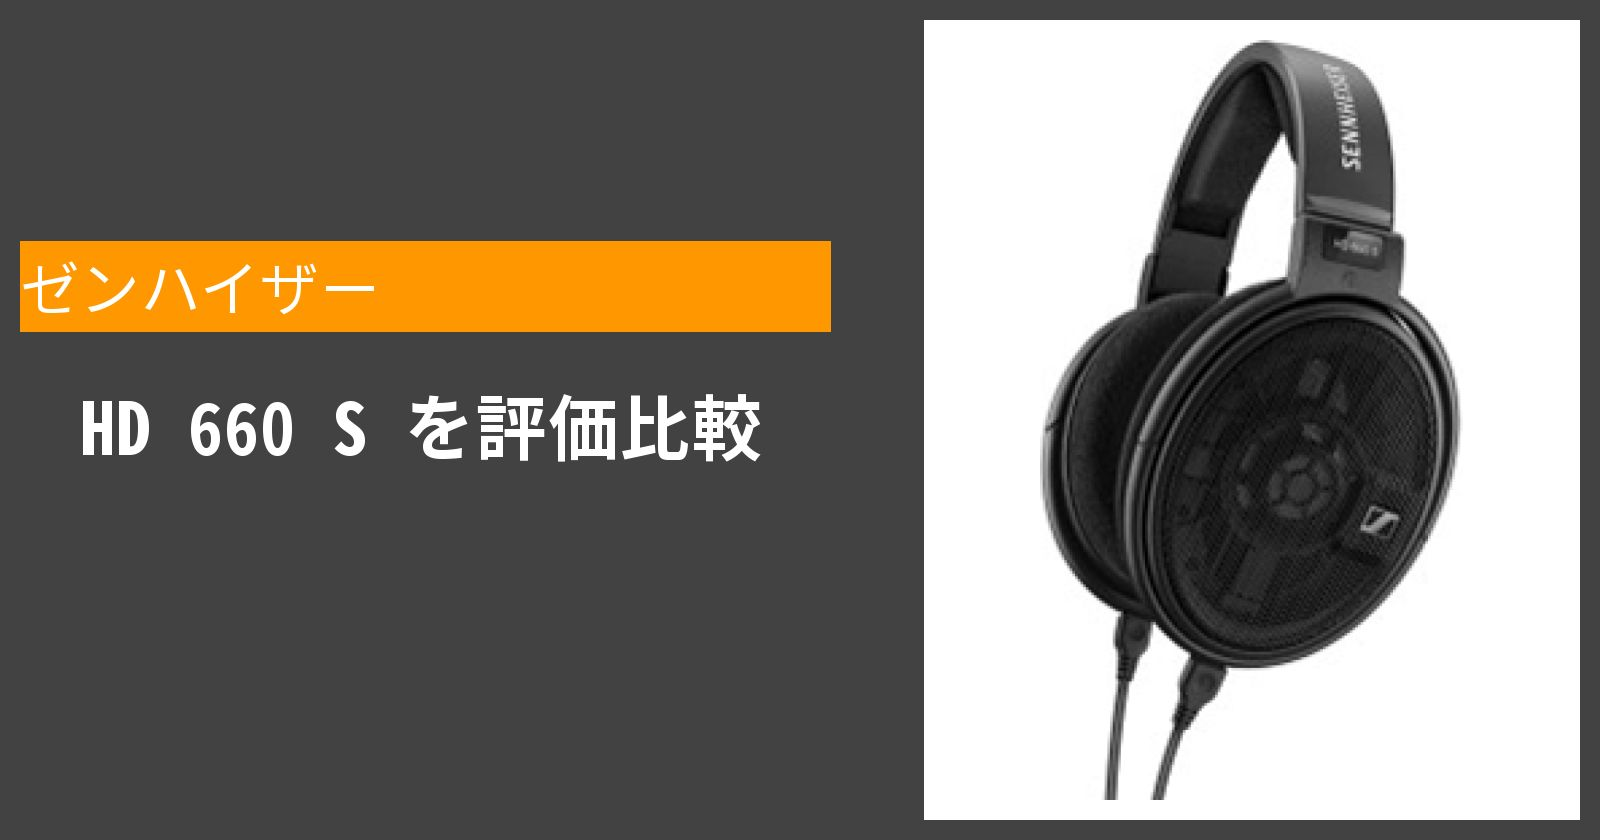 HD 660 Sを徹底評価